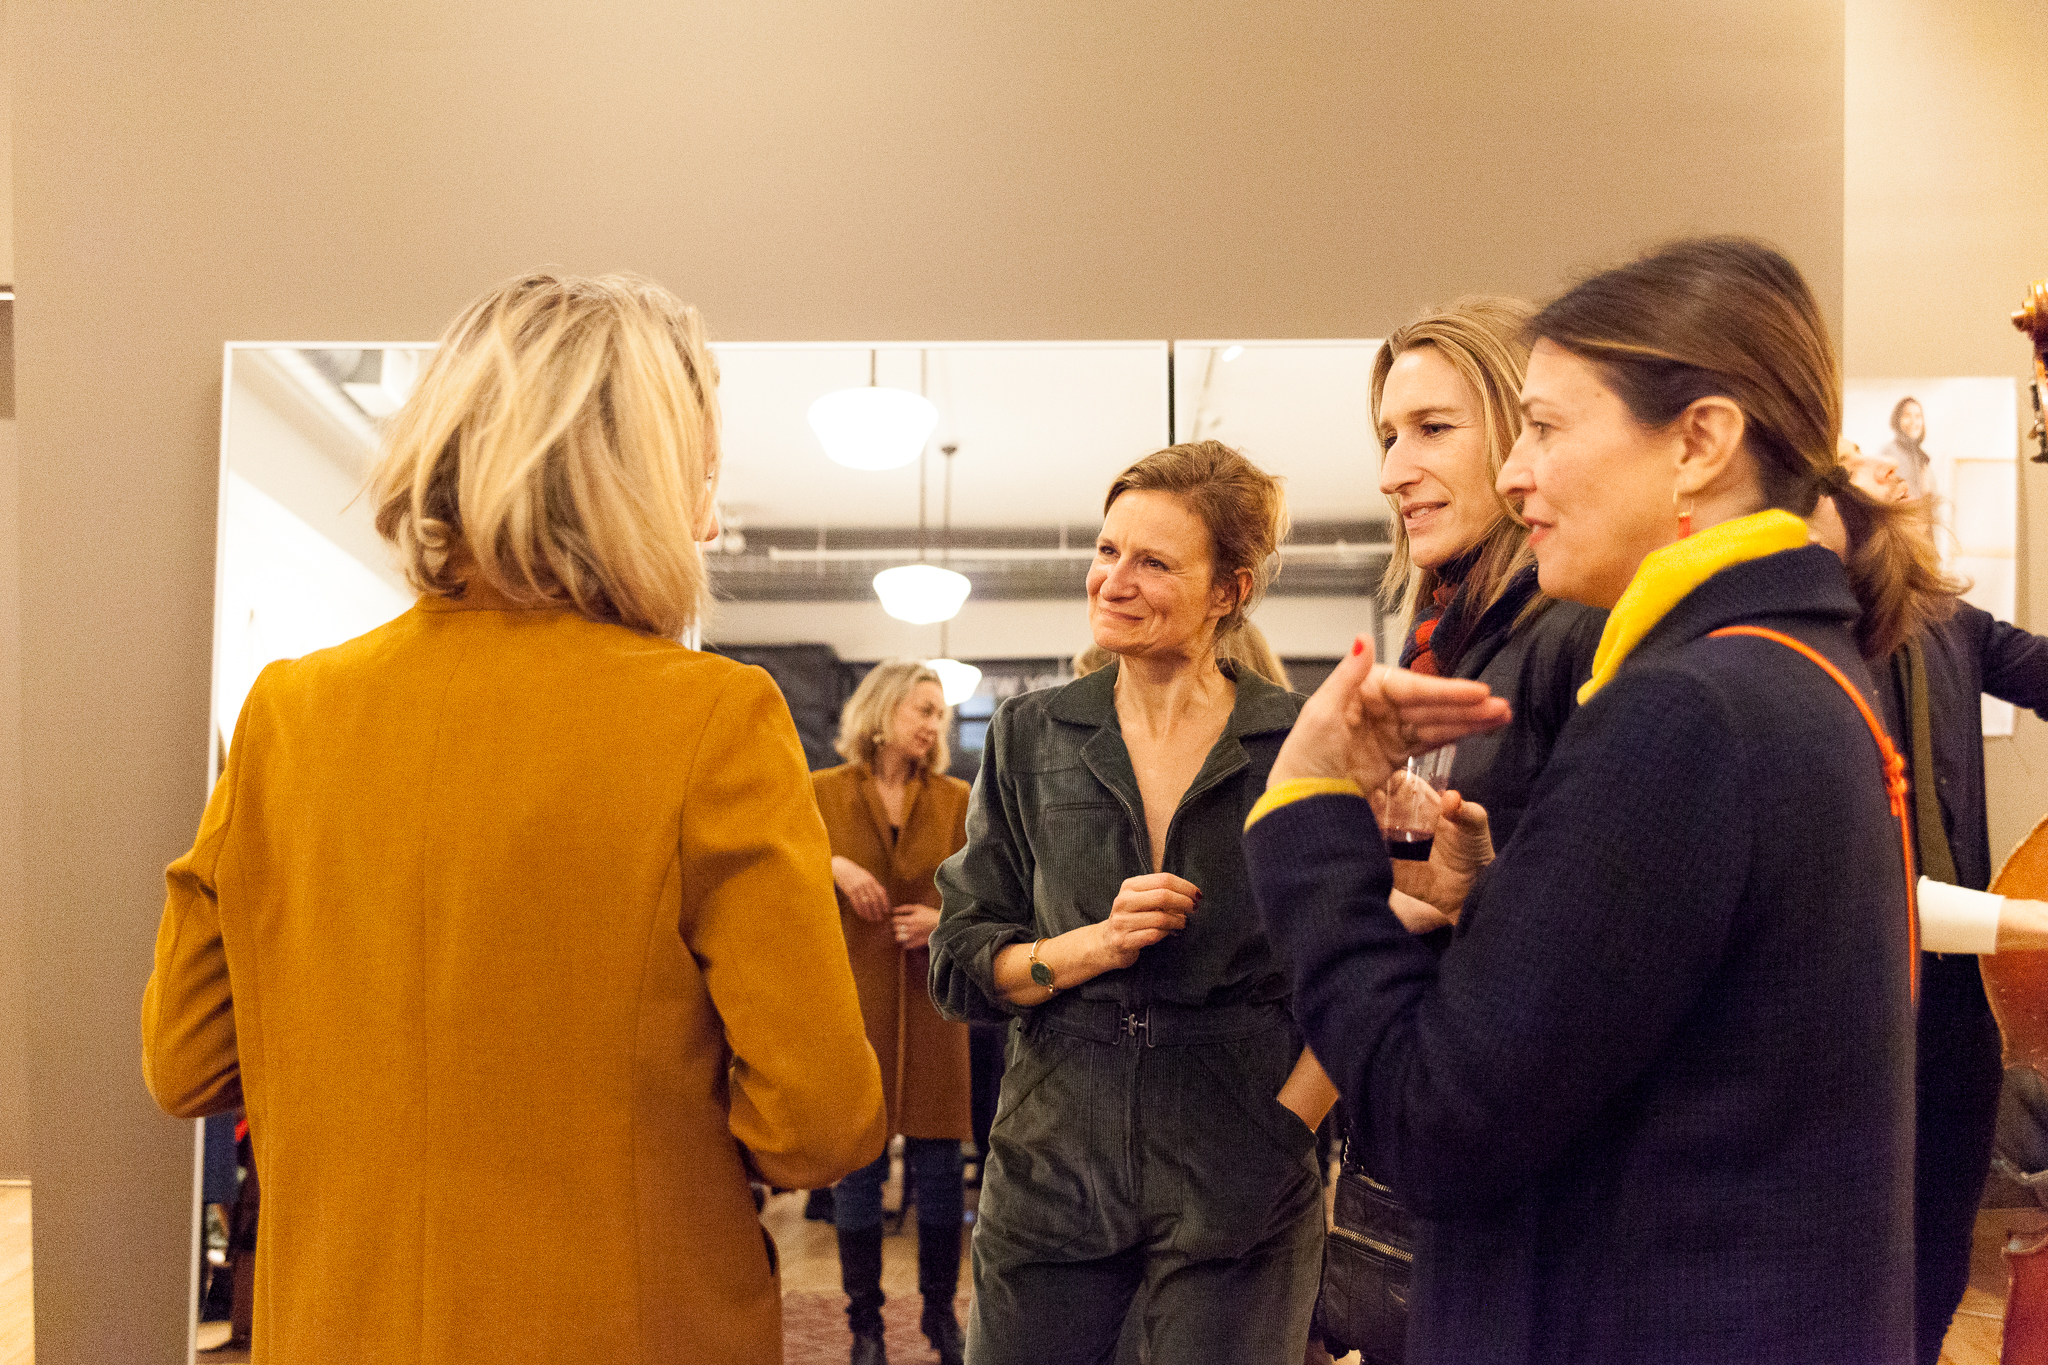 camuglia_anne-willi-holiday-party-nyc-2018_0037_2048.jpg